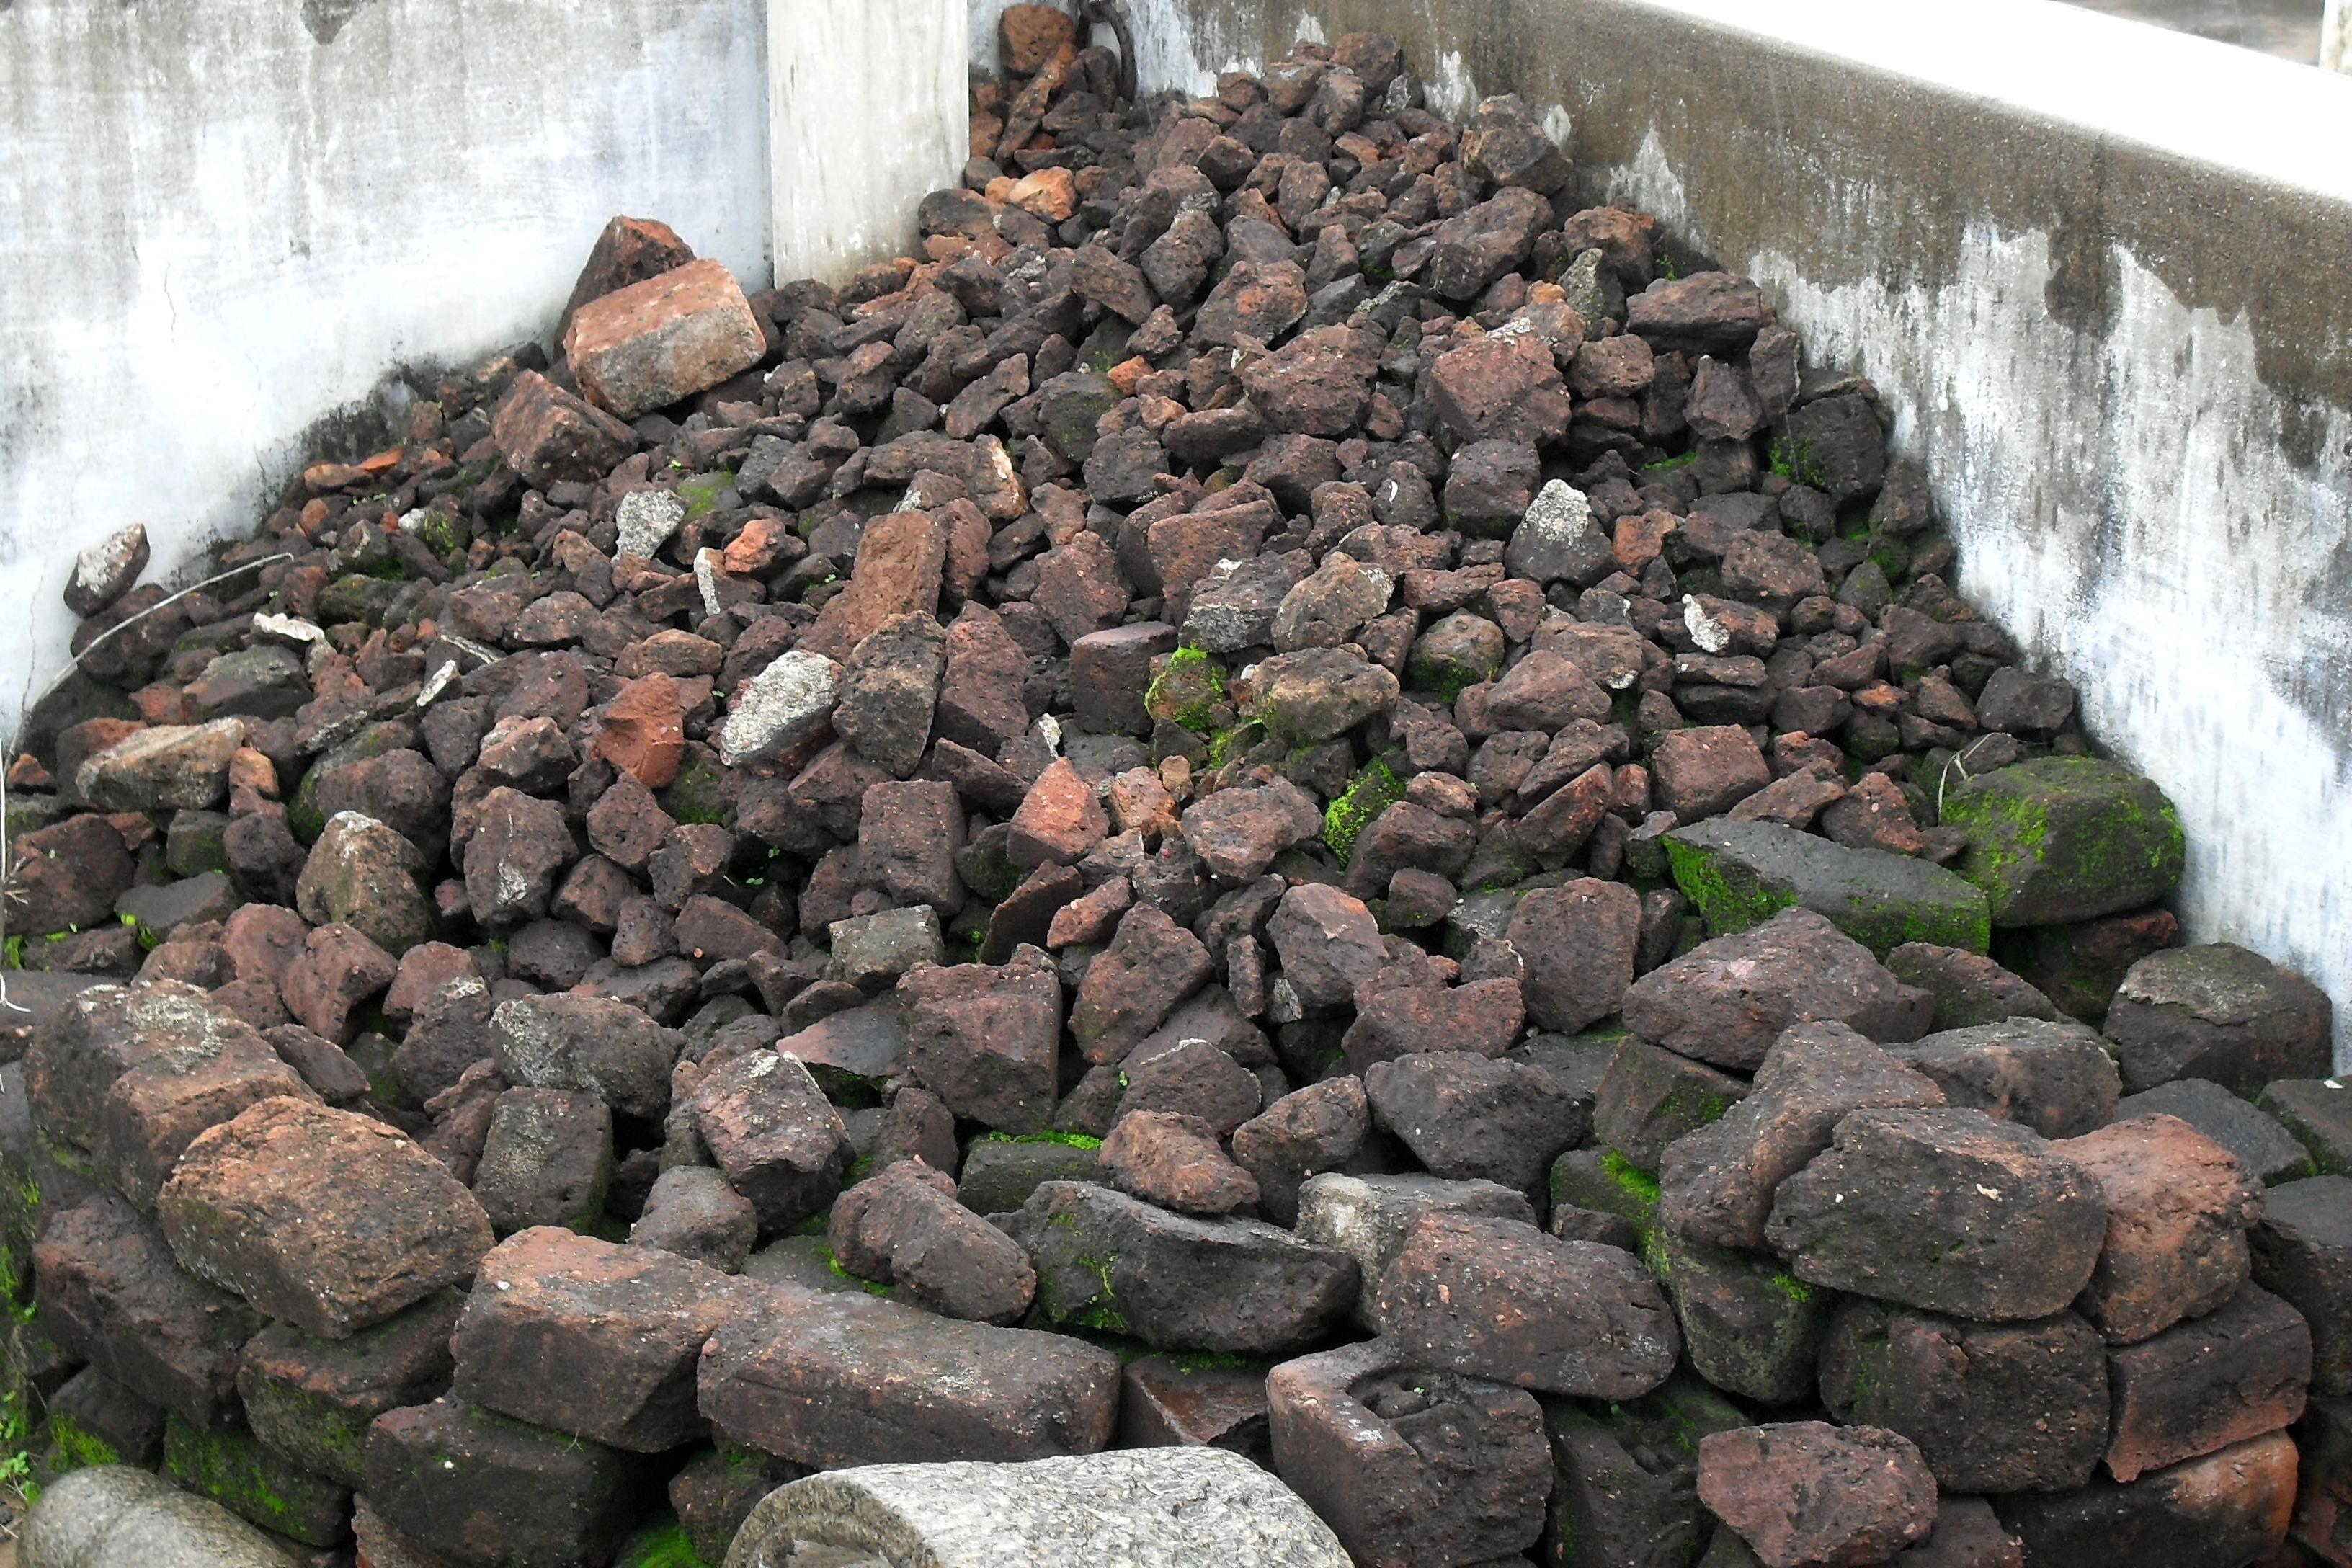 File bricks soil mutti tamilnadu 151 jpg wikimedia commons for Uses of soil in english